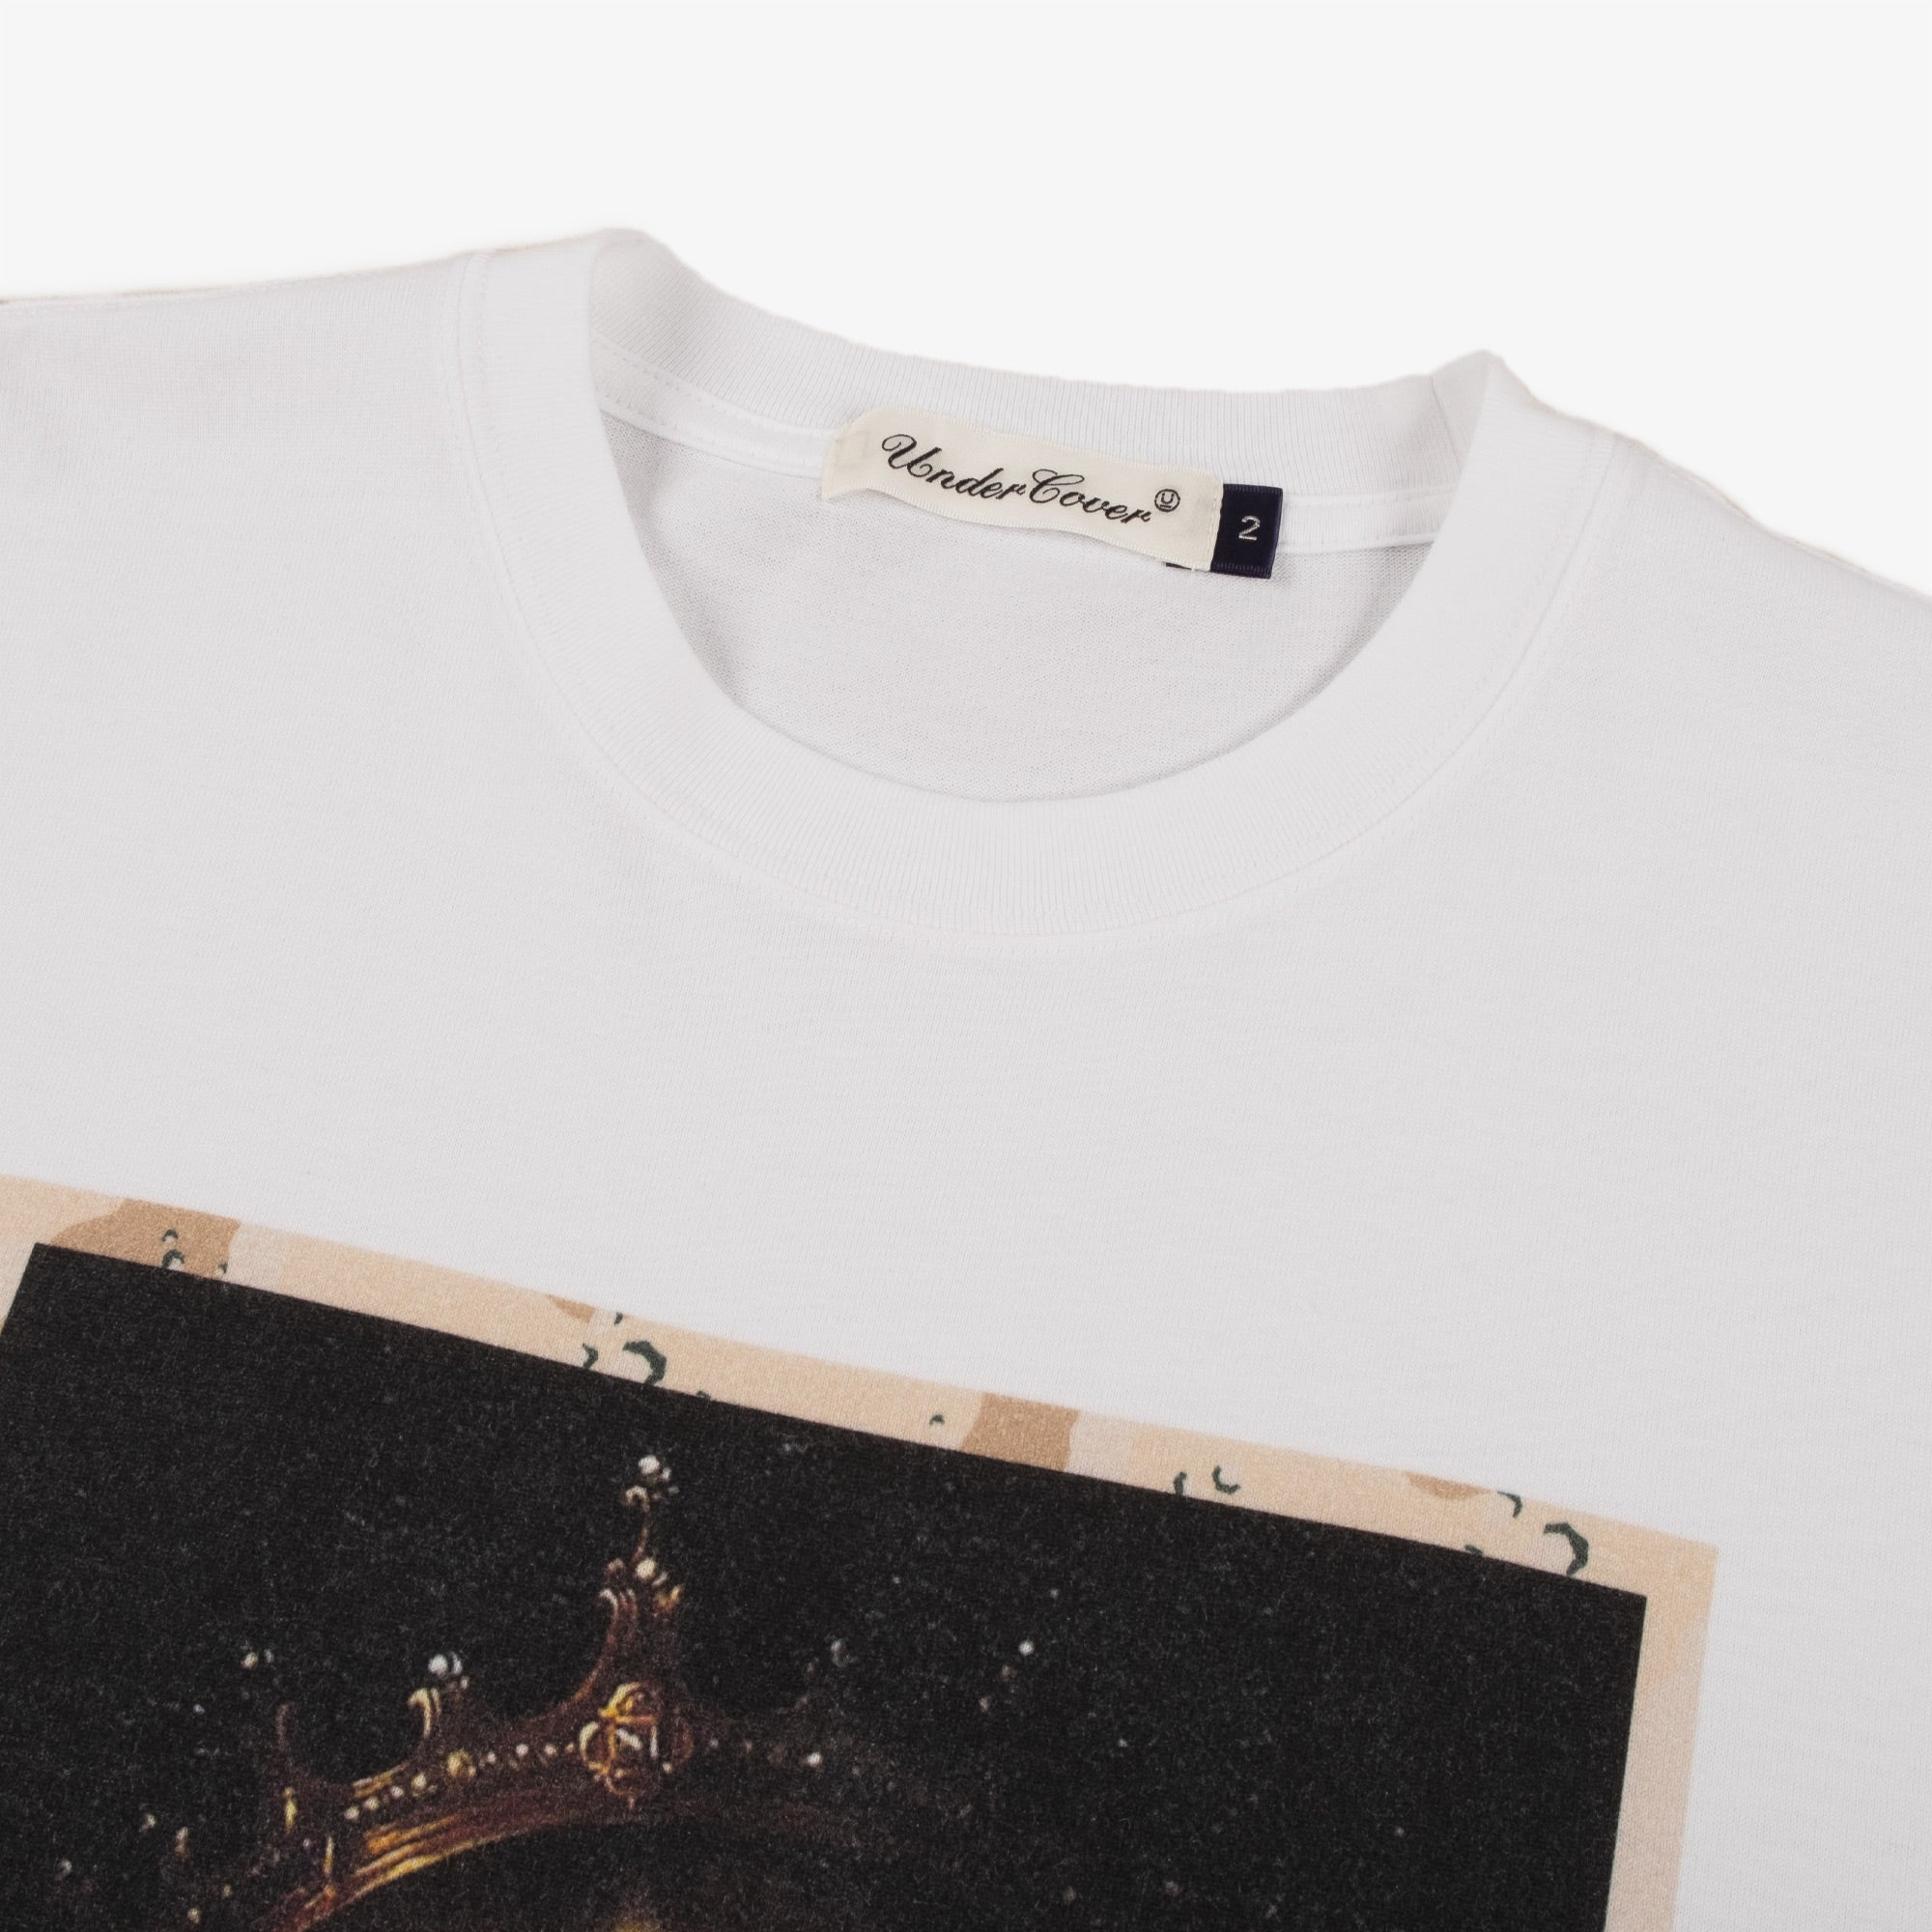 Undercover Two Faces Tee UC2A3804 - White 2